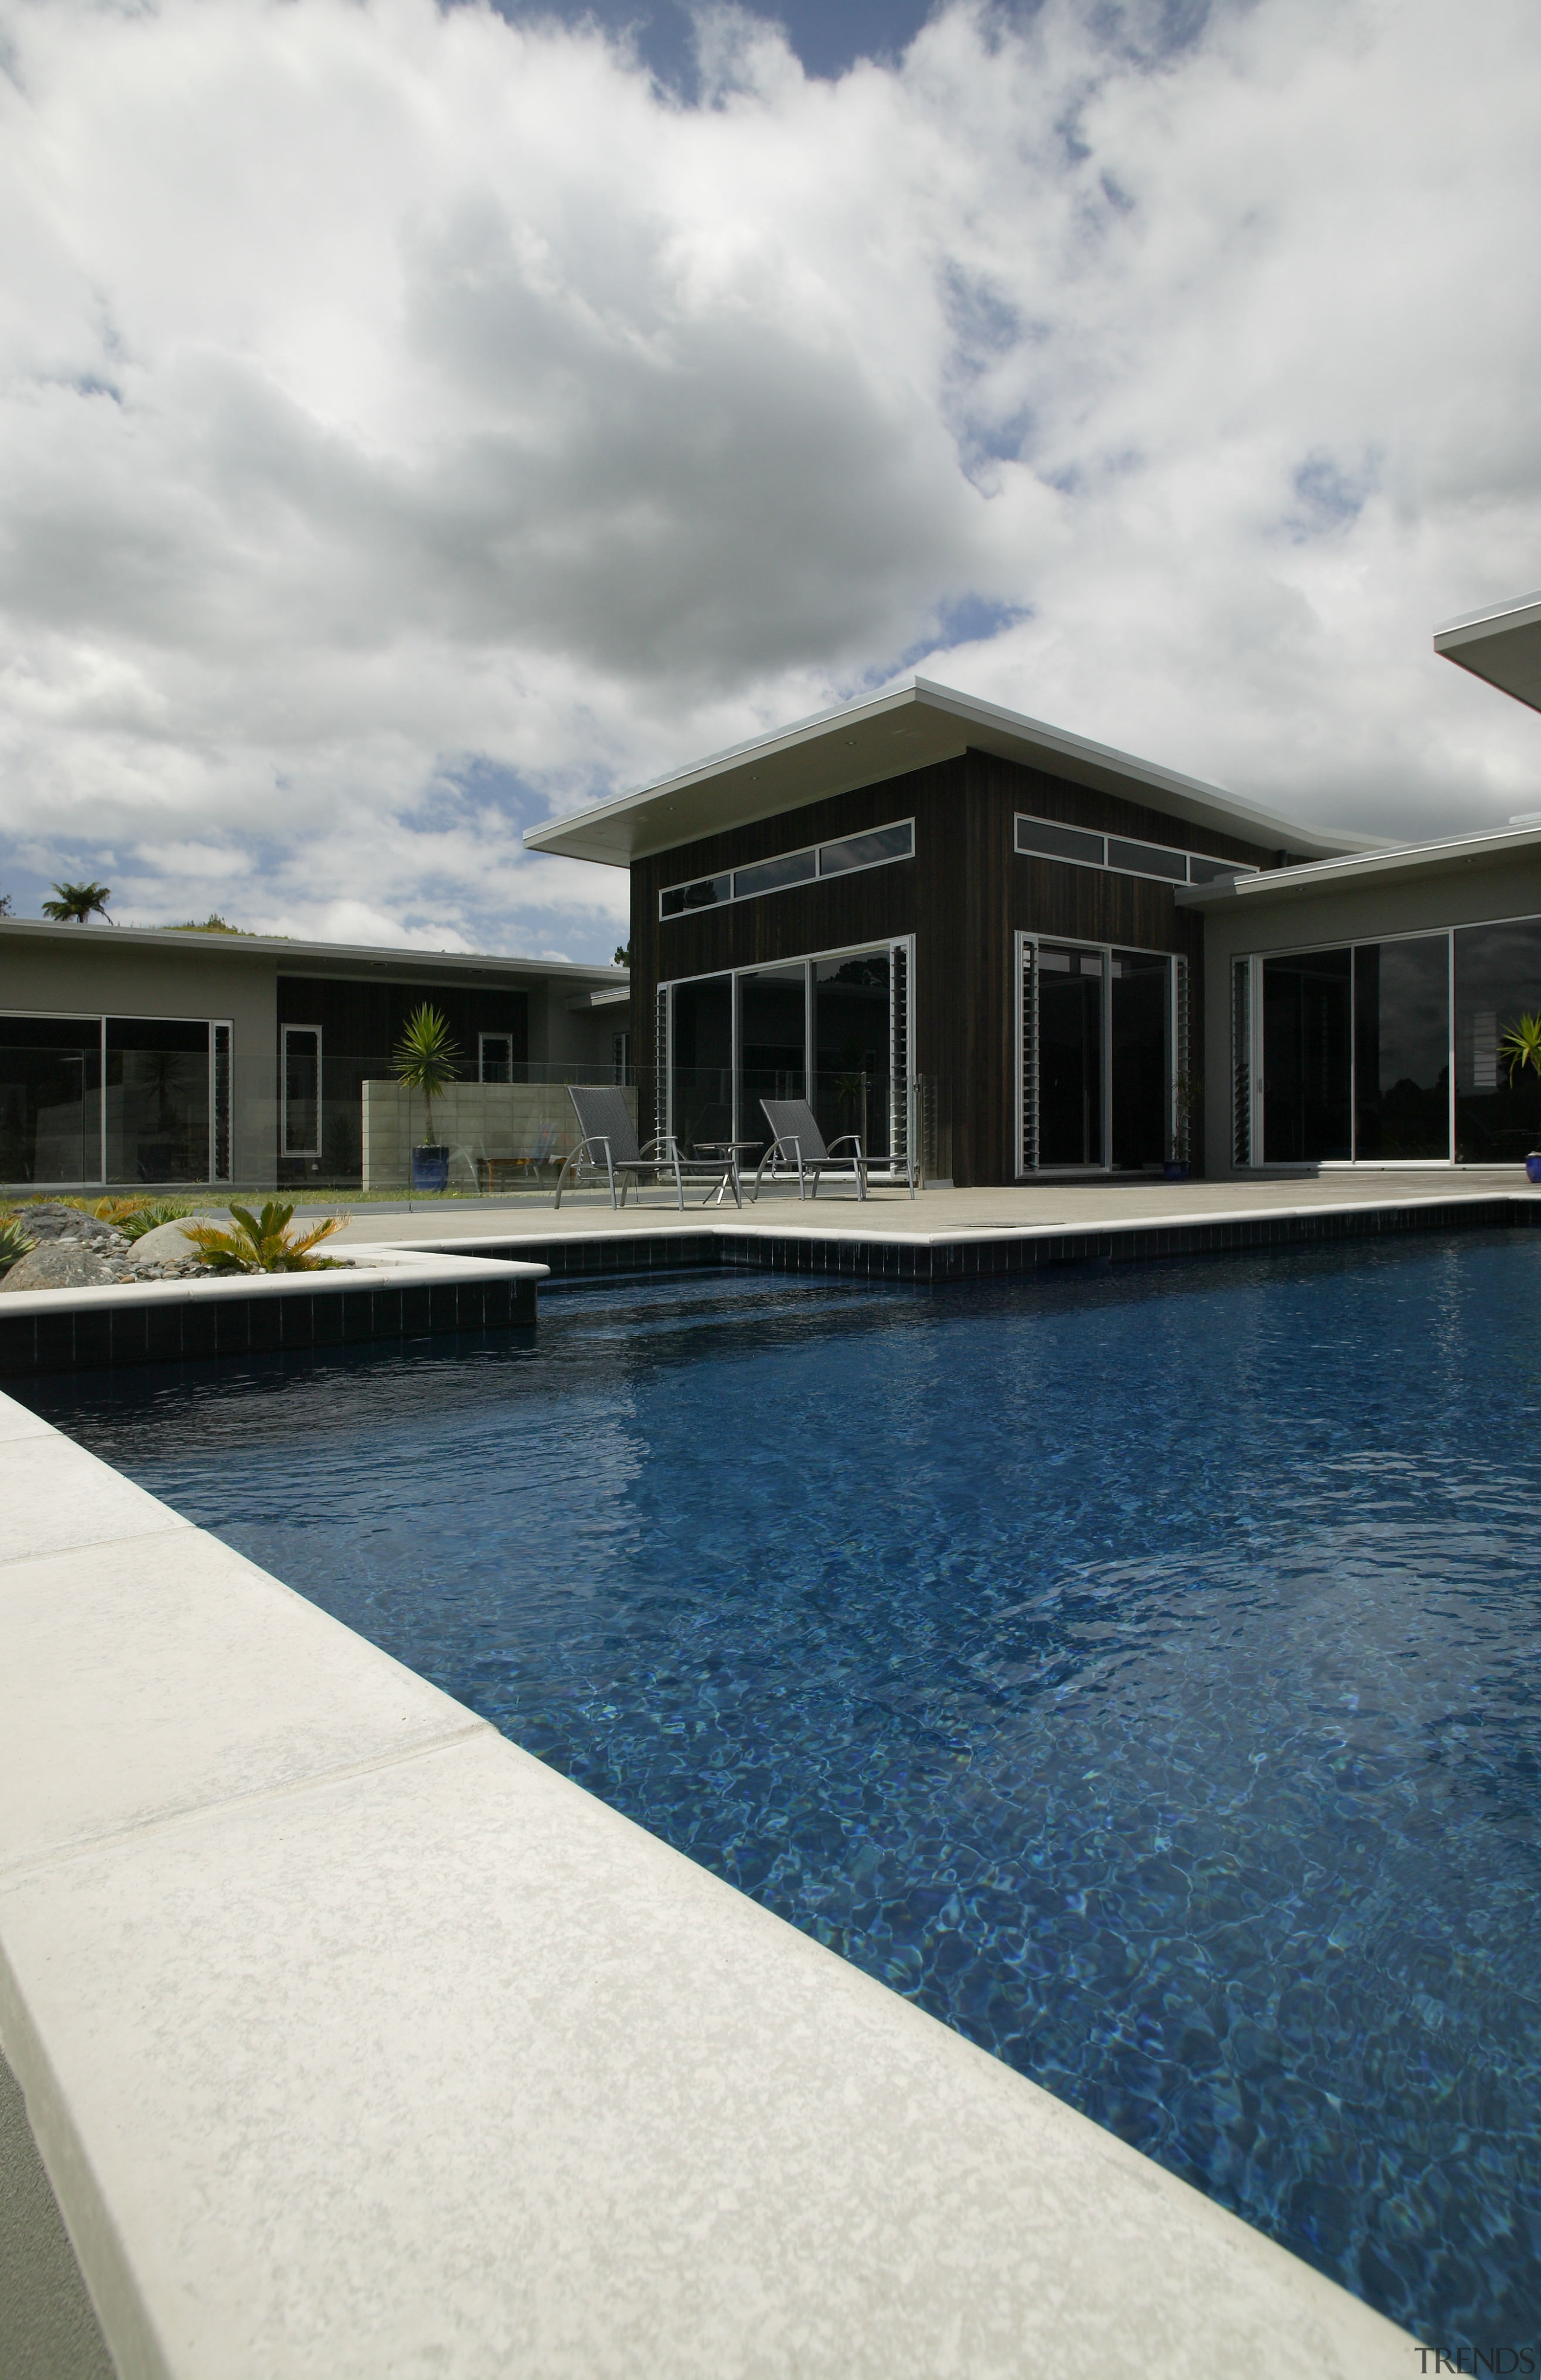 view of pool by Pool Resources. - view architecture, cloud, estate, home, house, property, real estate, reflection, sky, swimming pool, water, white